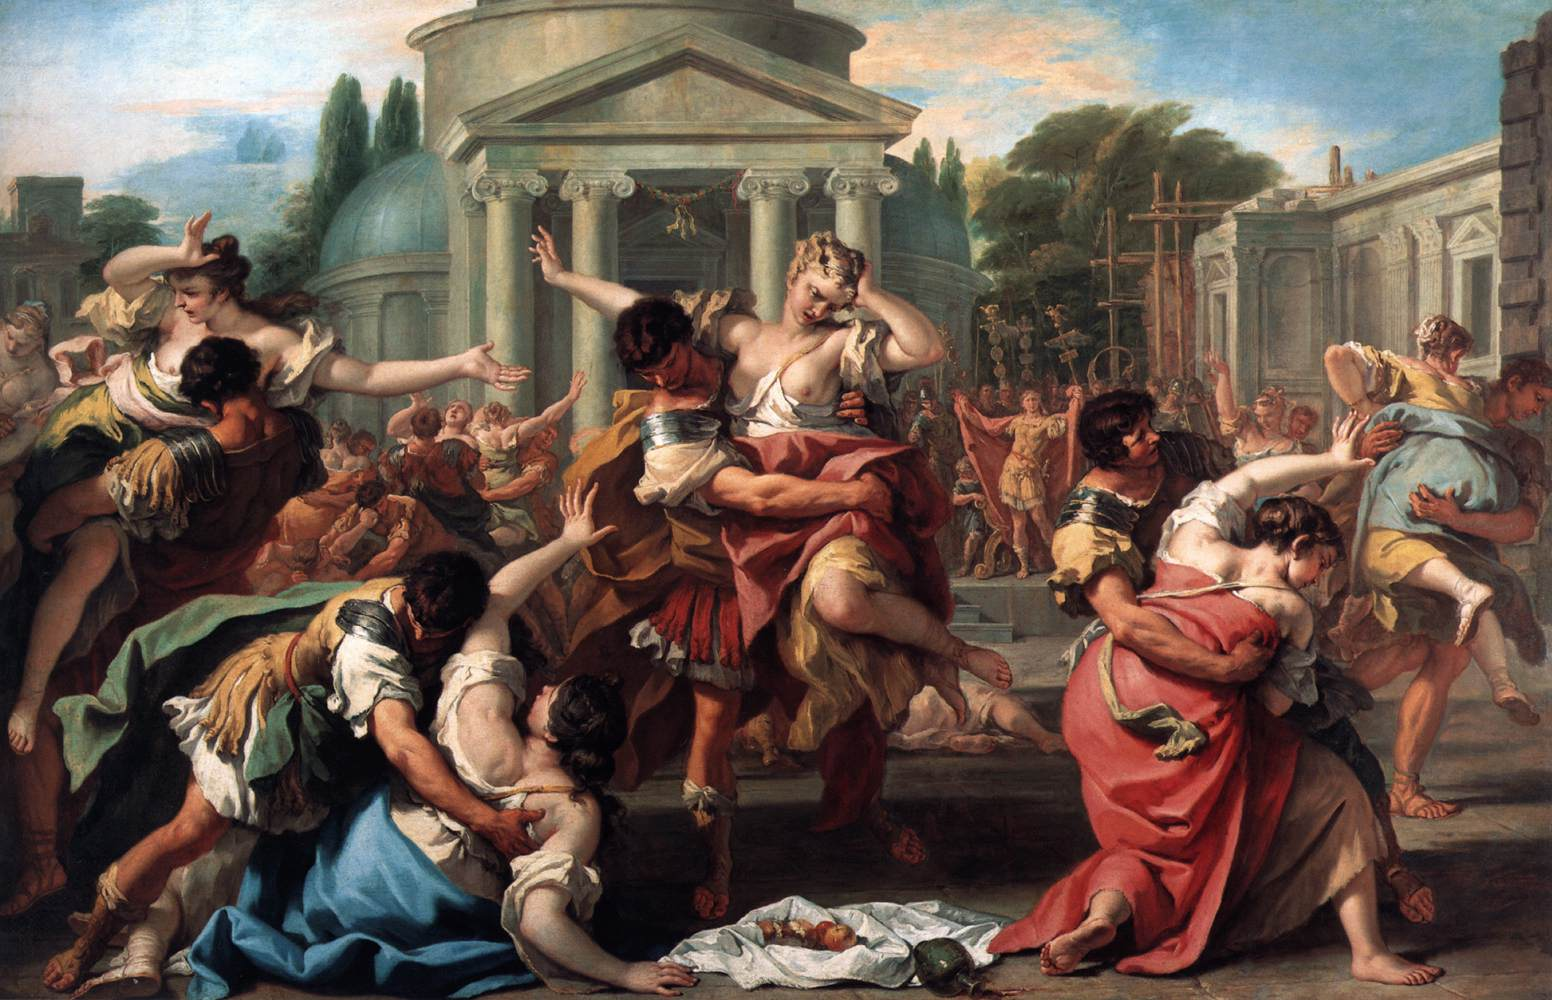 http://www.lib-art.com/imgpainting/1/1/54611-the-rape-of-the-sabine-women-ricci-sebastiano.jpg